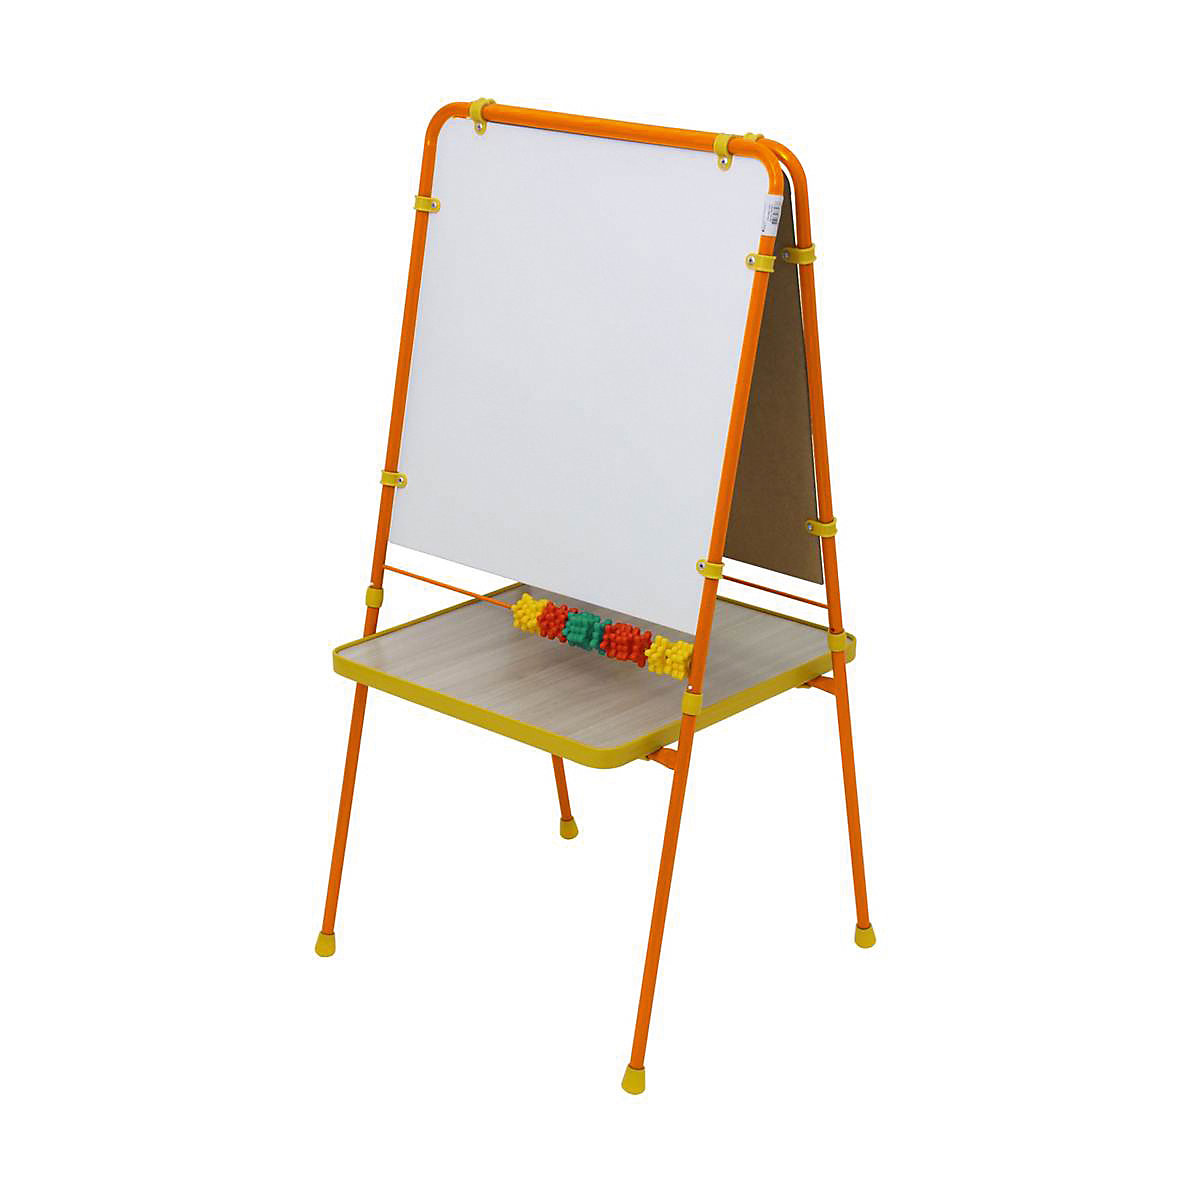 Drawing Toys FEYA 8645847 Easel Board Sets Creativity 3D pen Kids Coloring Pages howshow 4 4 inch kids writing tablet handwriting mini lcd drawing board